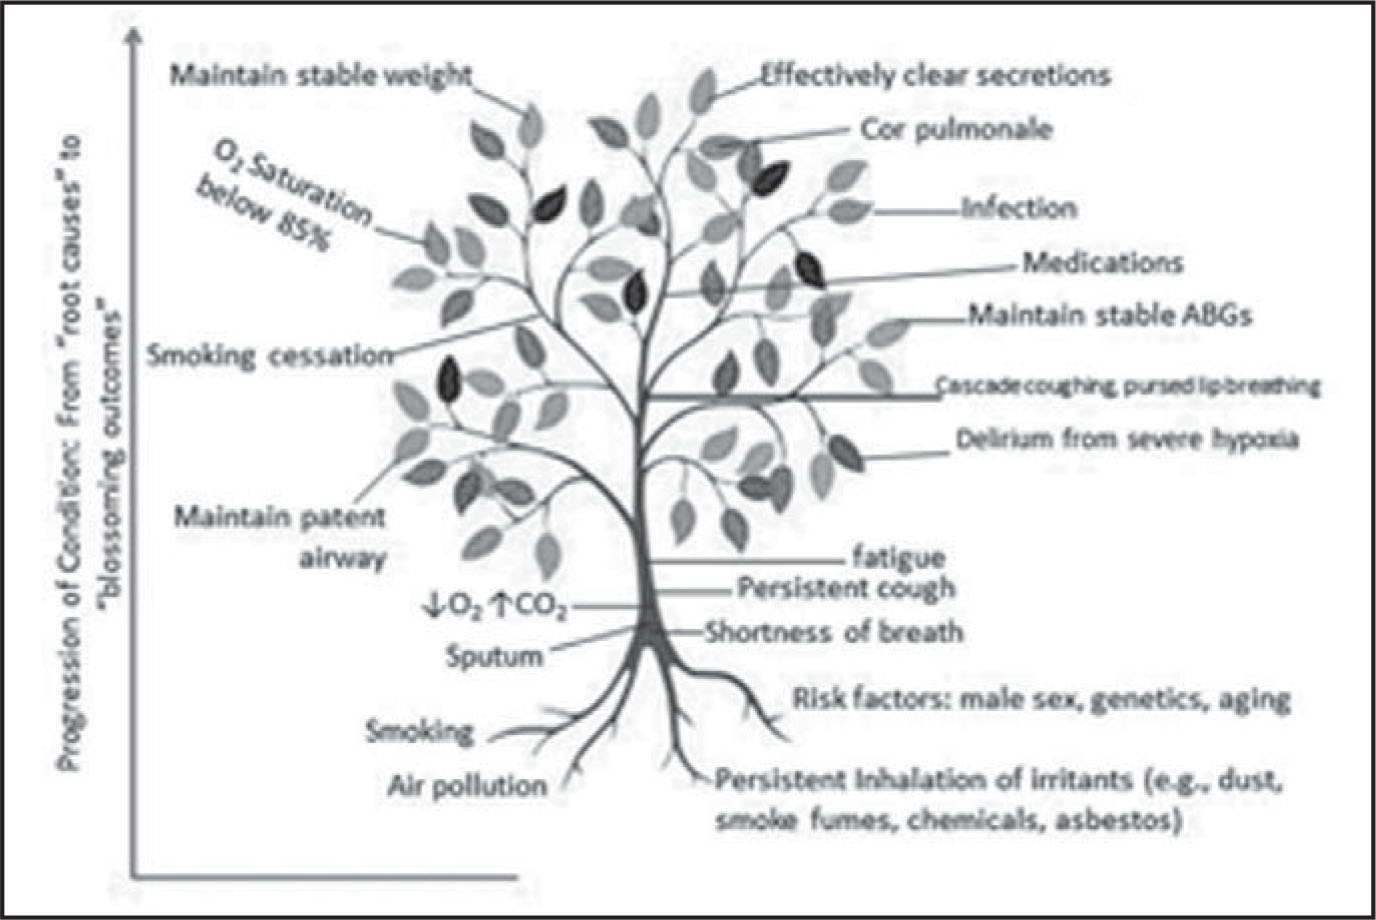 Use Of The Knowledge Tree As A Mind Map In A